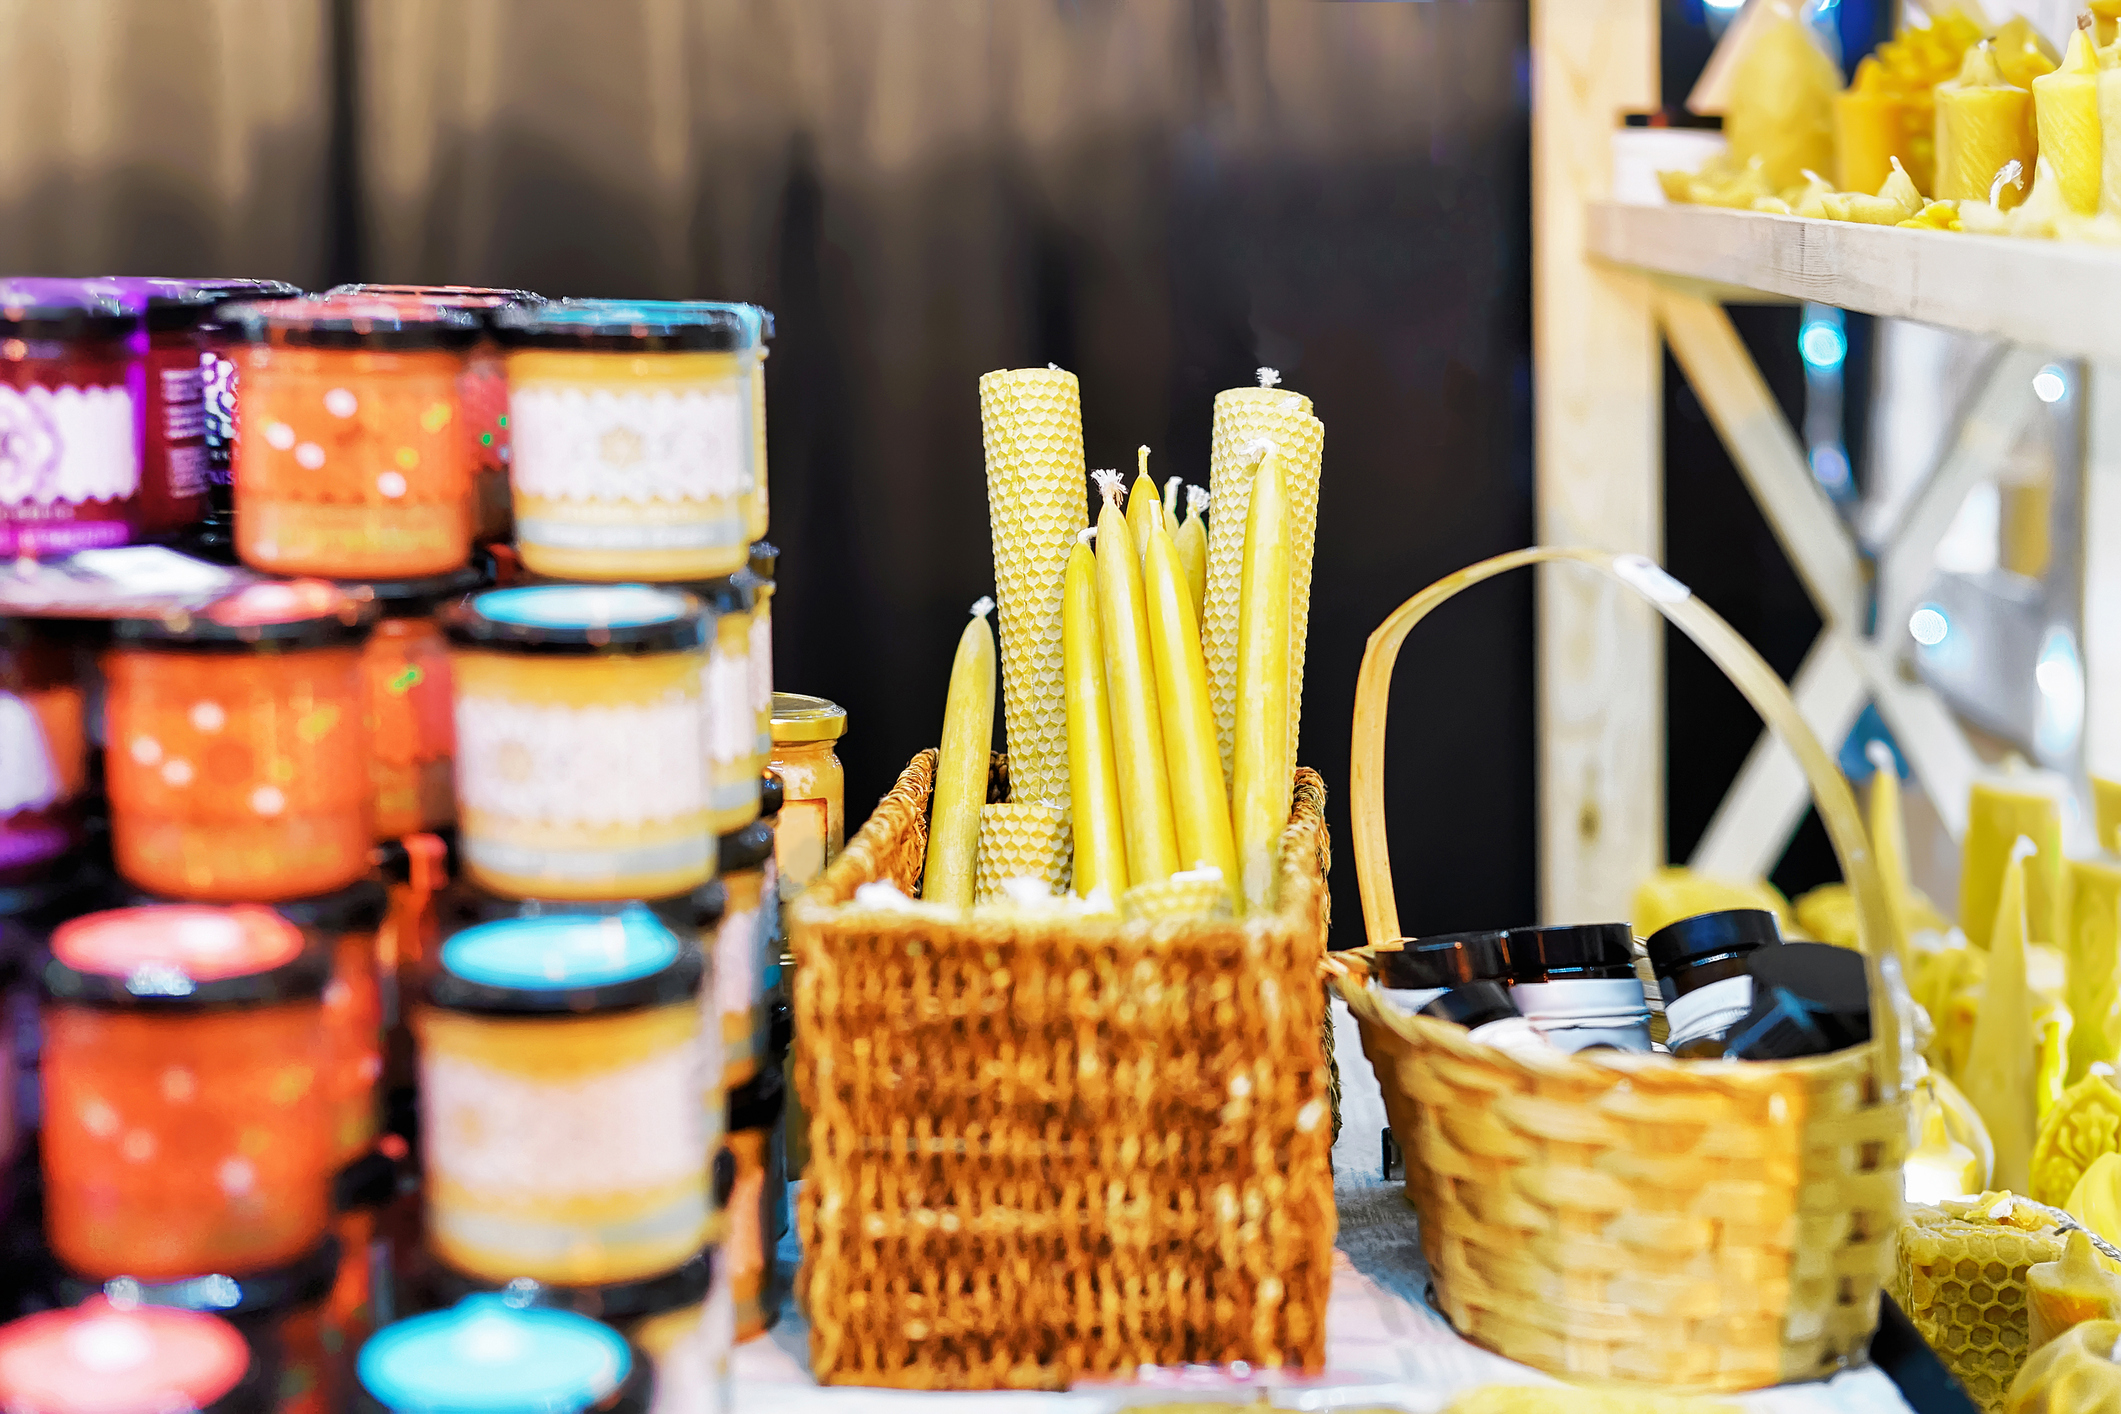 GIFTS, HOMEWARE AND KITCHENWARE BUSINESS MODEL FOR SALE